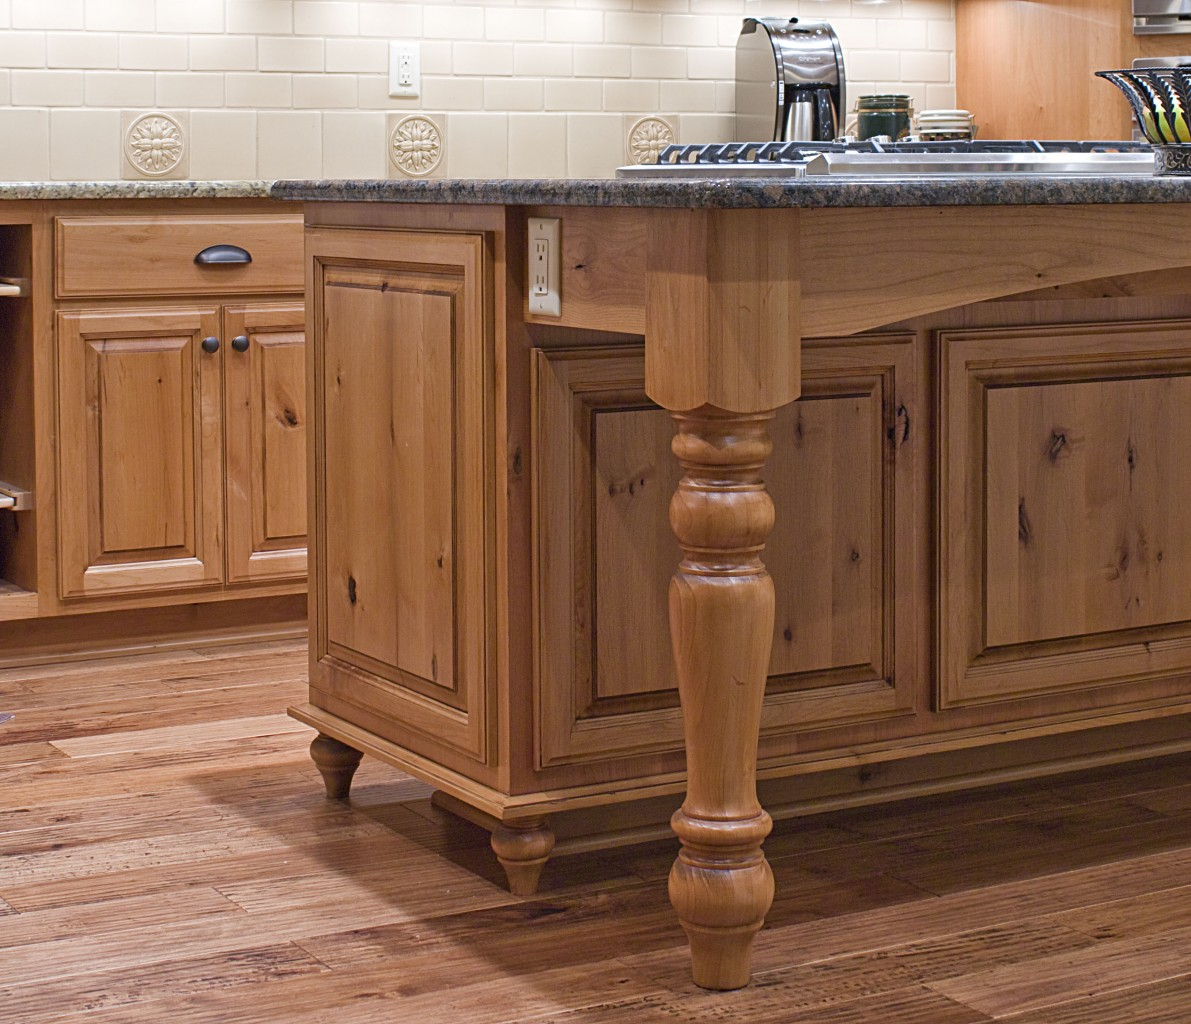 Kitchen Cabinets Vancouver: Cabinets For Kitchens And Bathrooms In Vancouver, WA